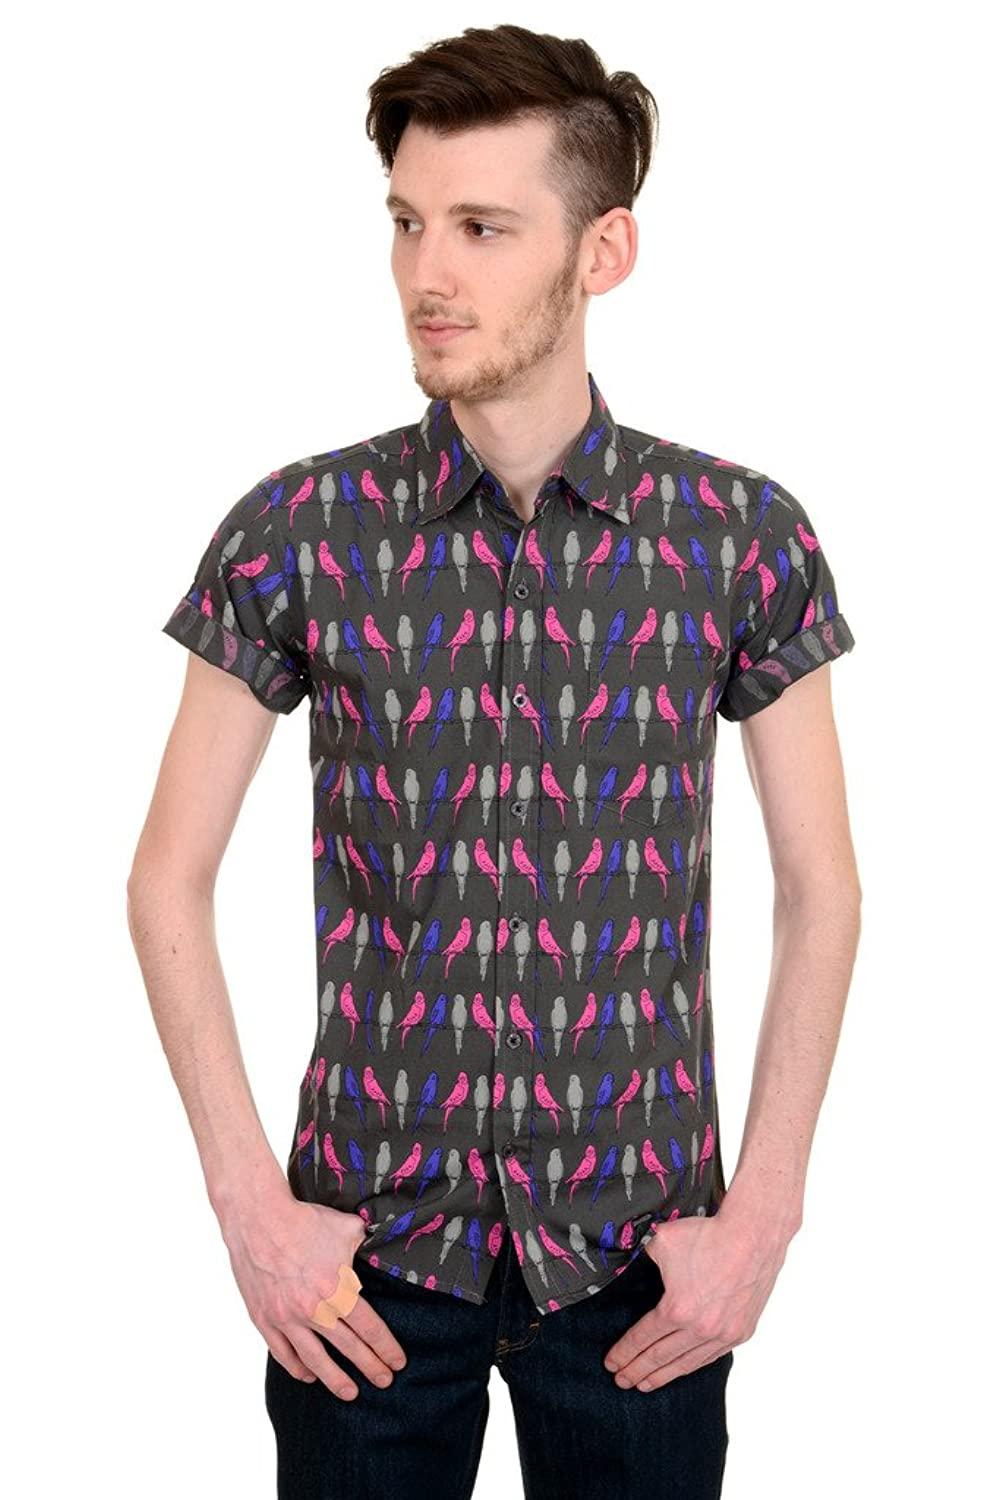 1960s Style Men's Clothing Mens Run & Fly 60s 70s Indie Preppy Retro Budgies On A Perch Short Sleeve Shirt $34.95 AT vintagedancer.com